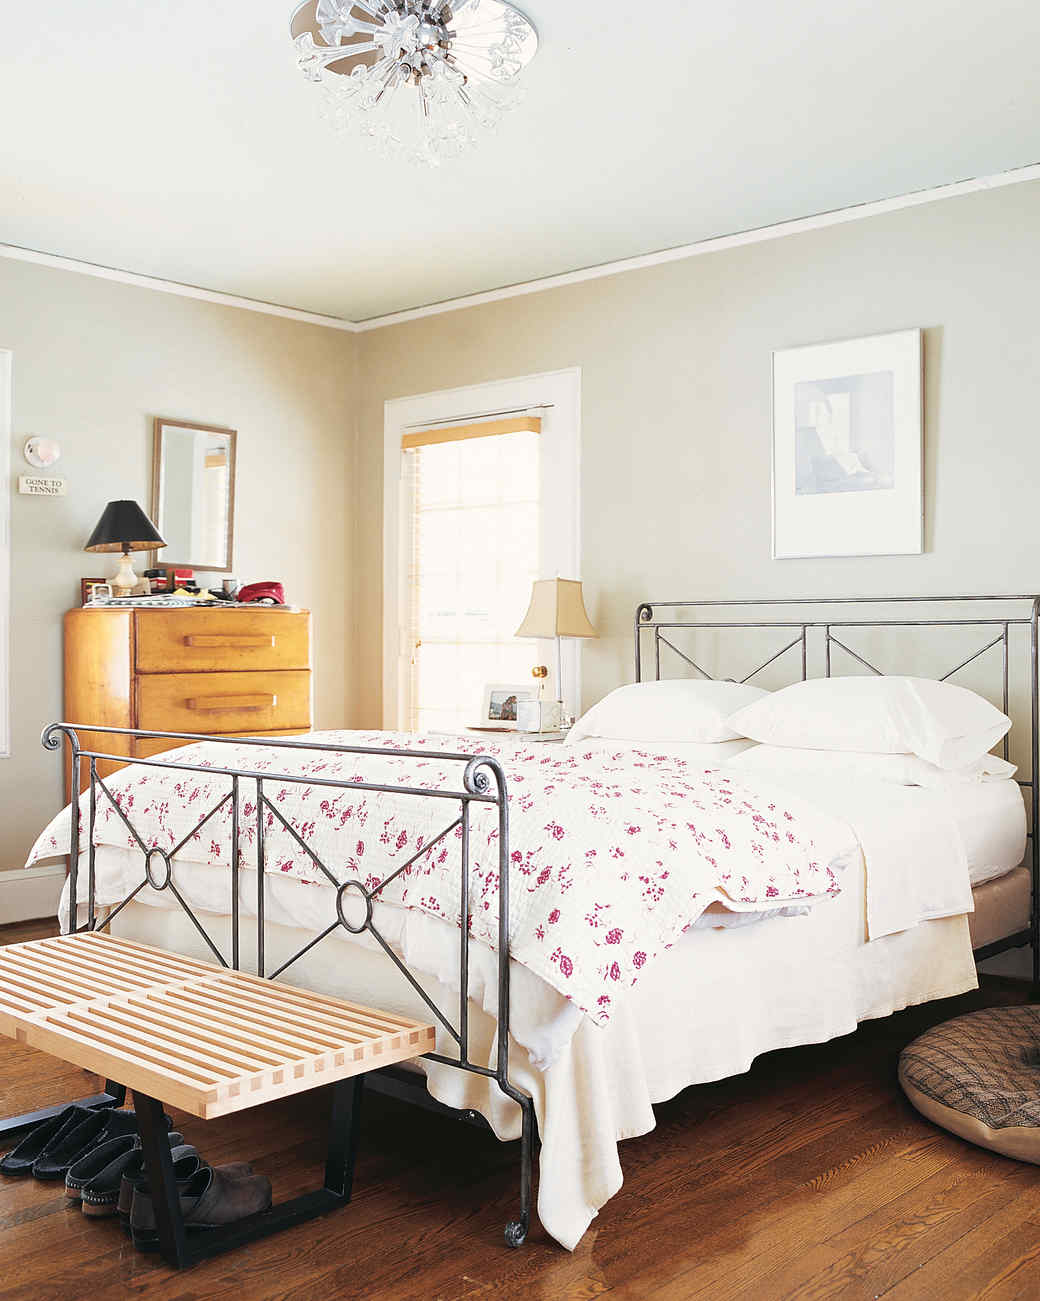 Bright Ideas for a Budget-Friendly Master Bedroom Makeover | Martha ...